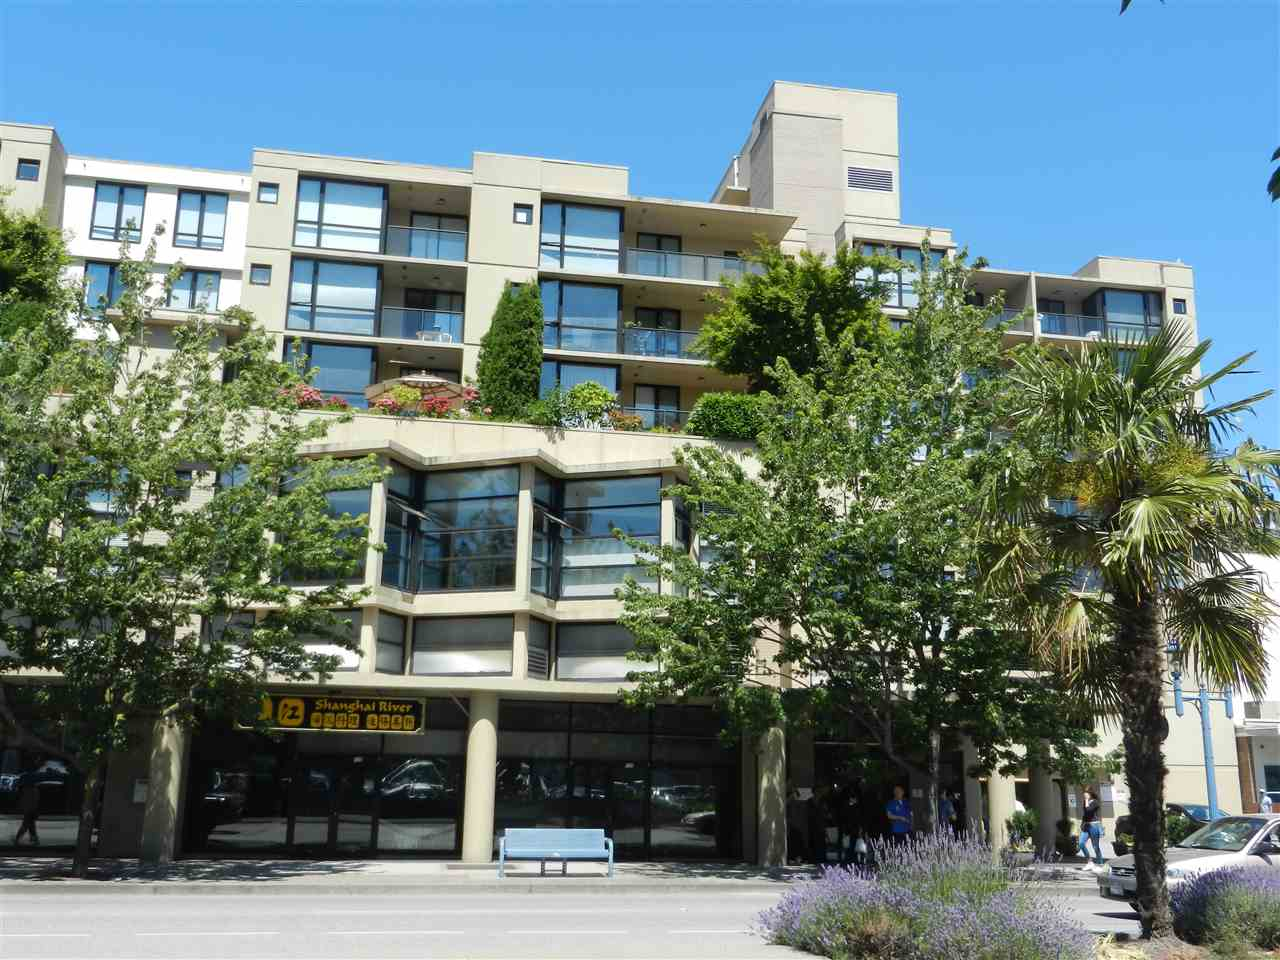 Condo Apartment at 517 7831 WESTMINSTER HIGHWAY, Unit 517, Richmond, British Columbia. Image 1